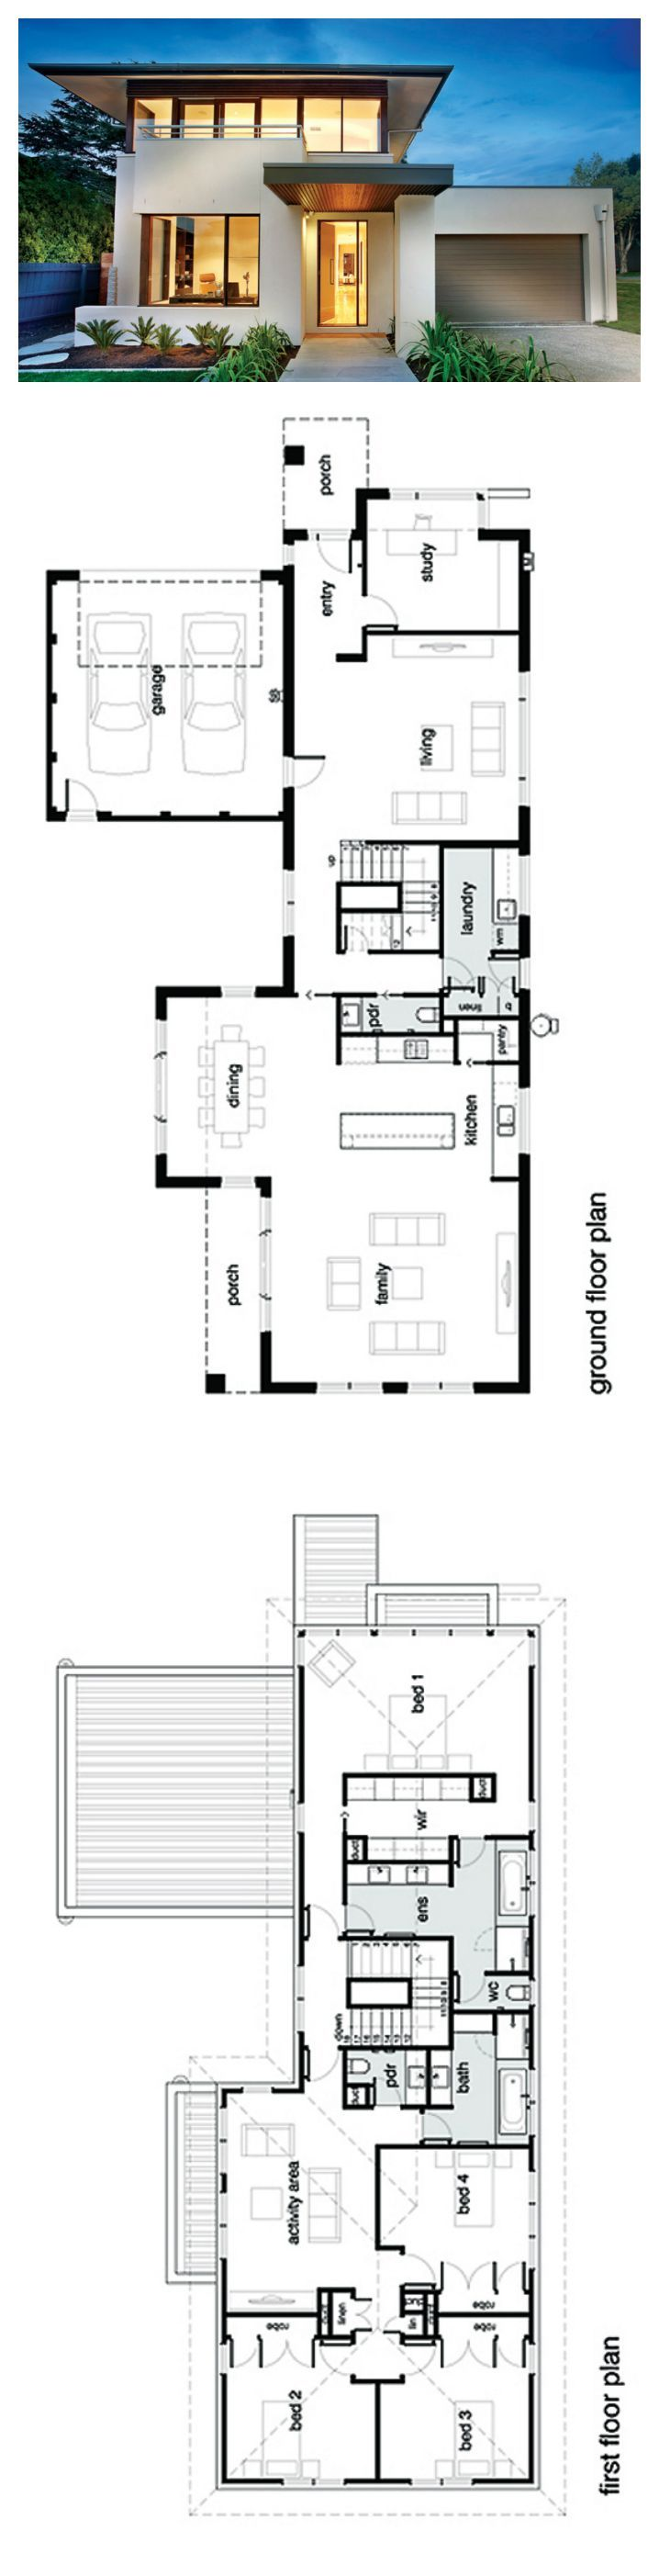 Modern House Floor Plans best 25+ modern house plans ideas on pinterest | modern house